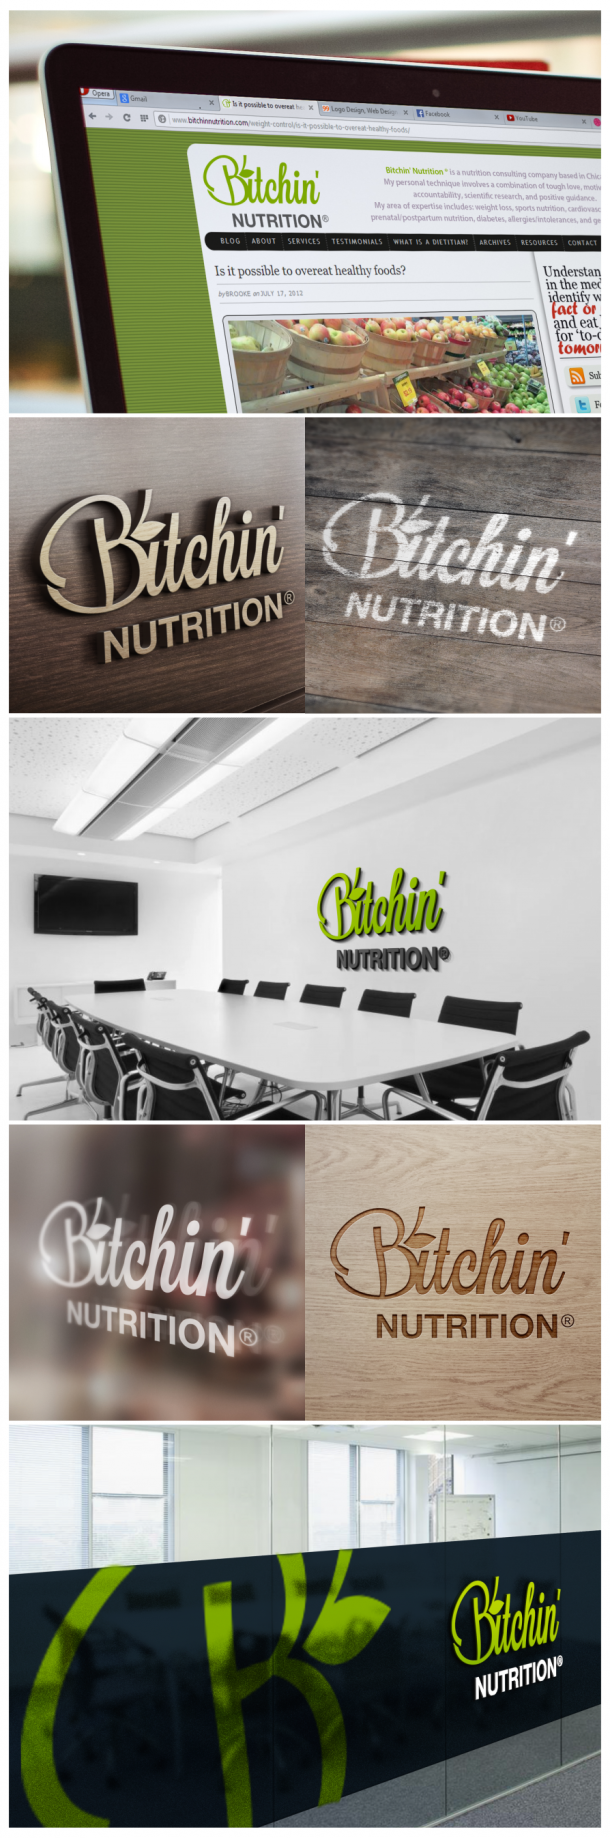 Bitchin' Nutrition Green Gray Mock_ups